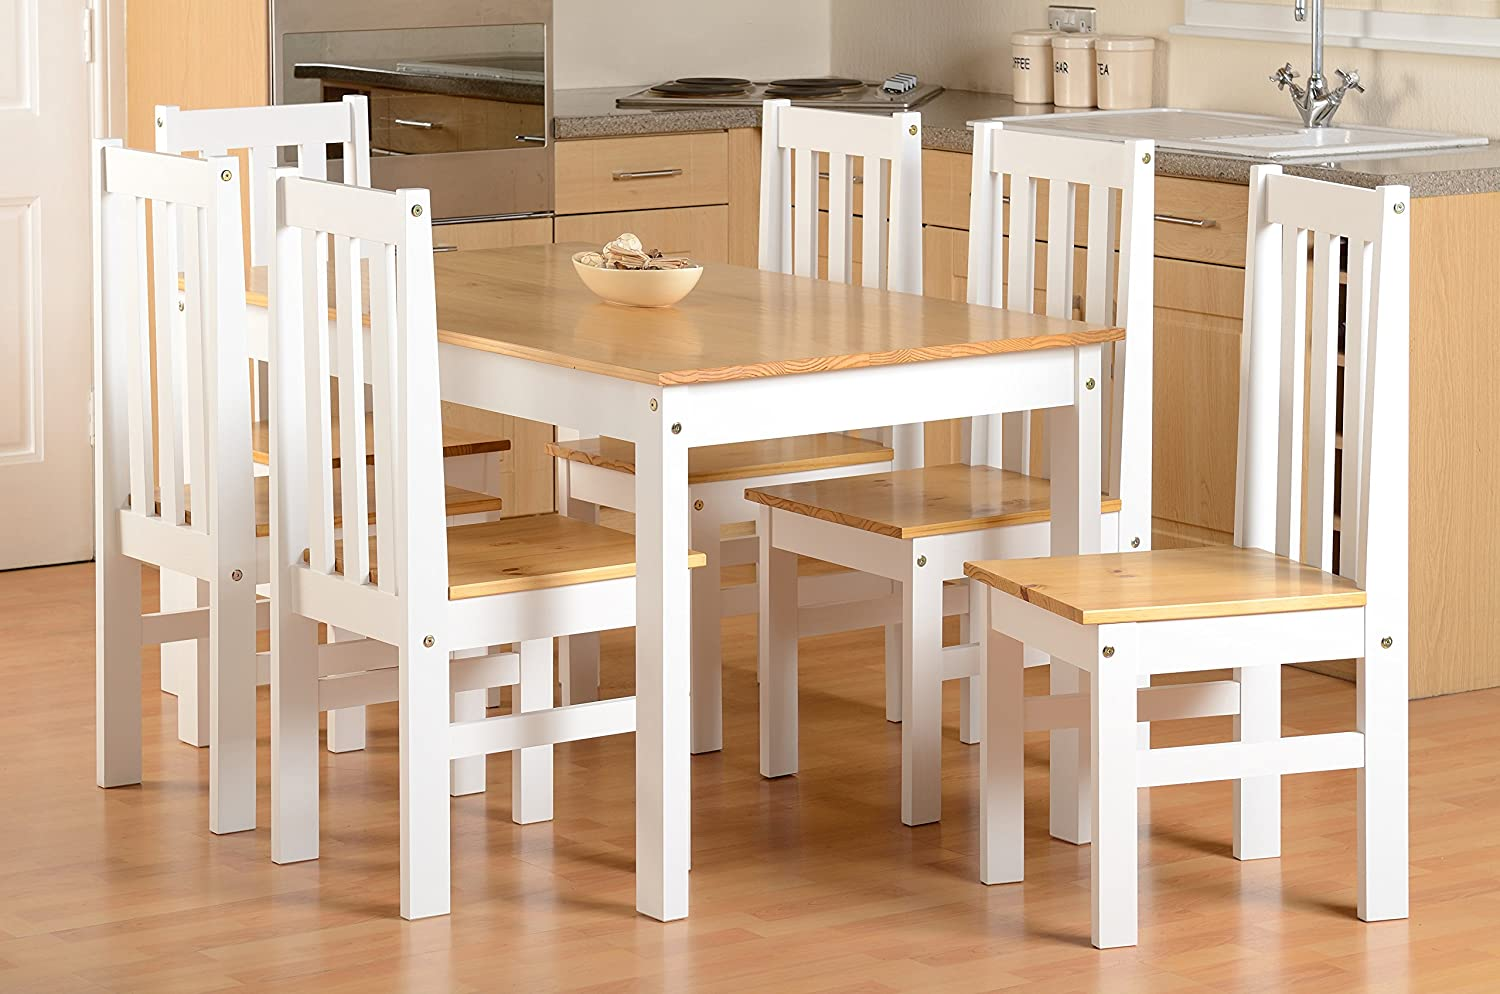 Miraculous Seconique Ludlow Large Dining Set White And Oak Dining Table And 6 Slatted Highback Chairs Download Free Architecture Designs Embacsunscenecom